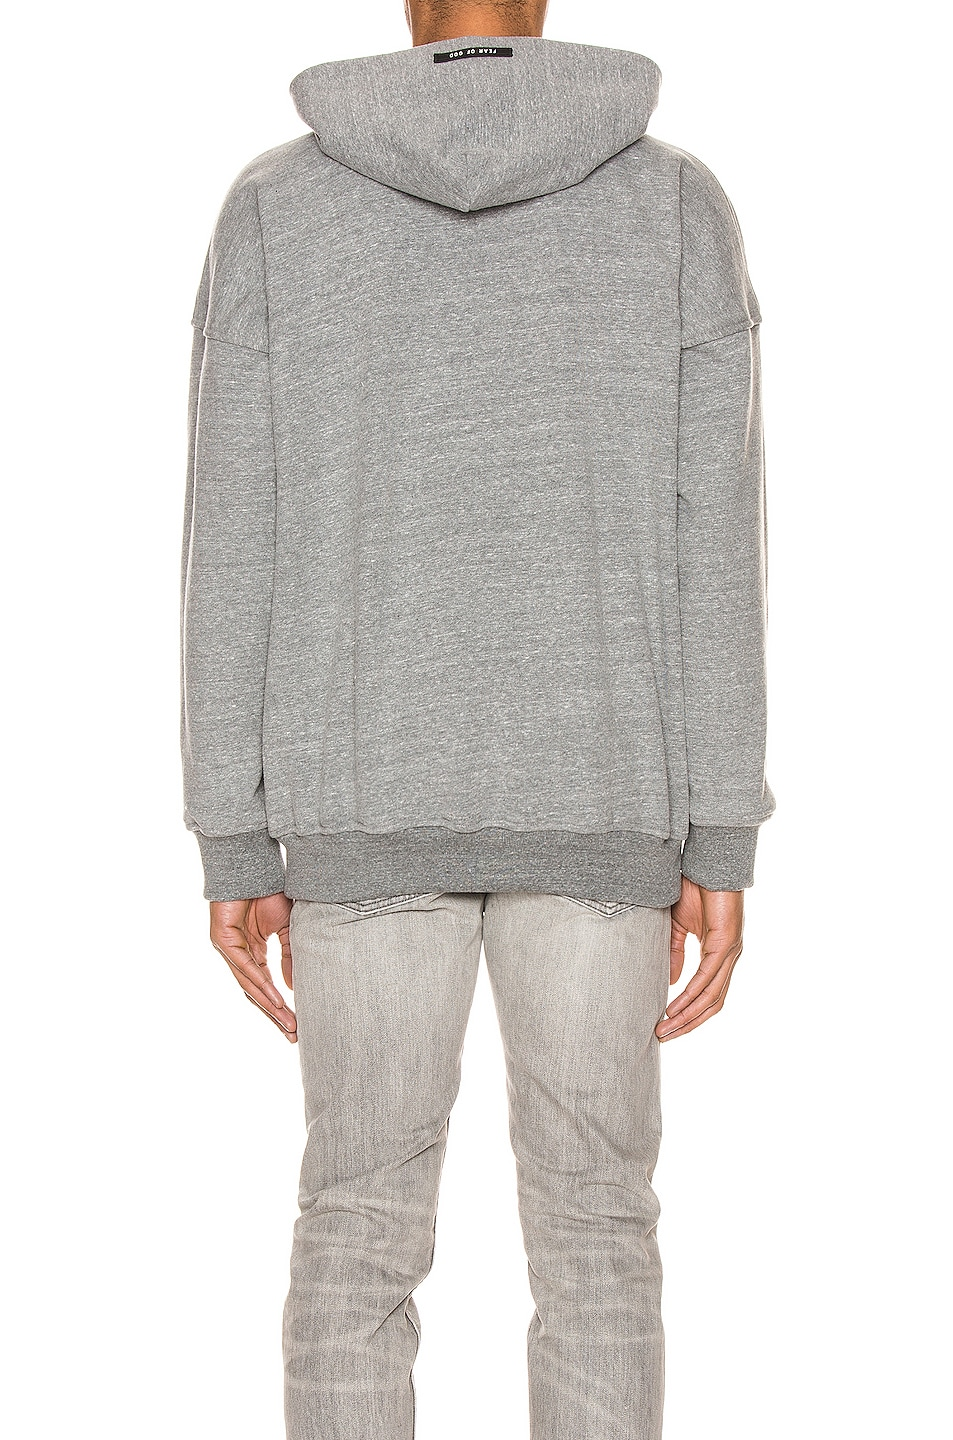 Image 3 of Fear of God Everyday FG Hoodie in Heather Grey & Black